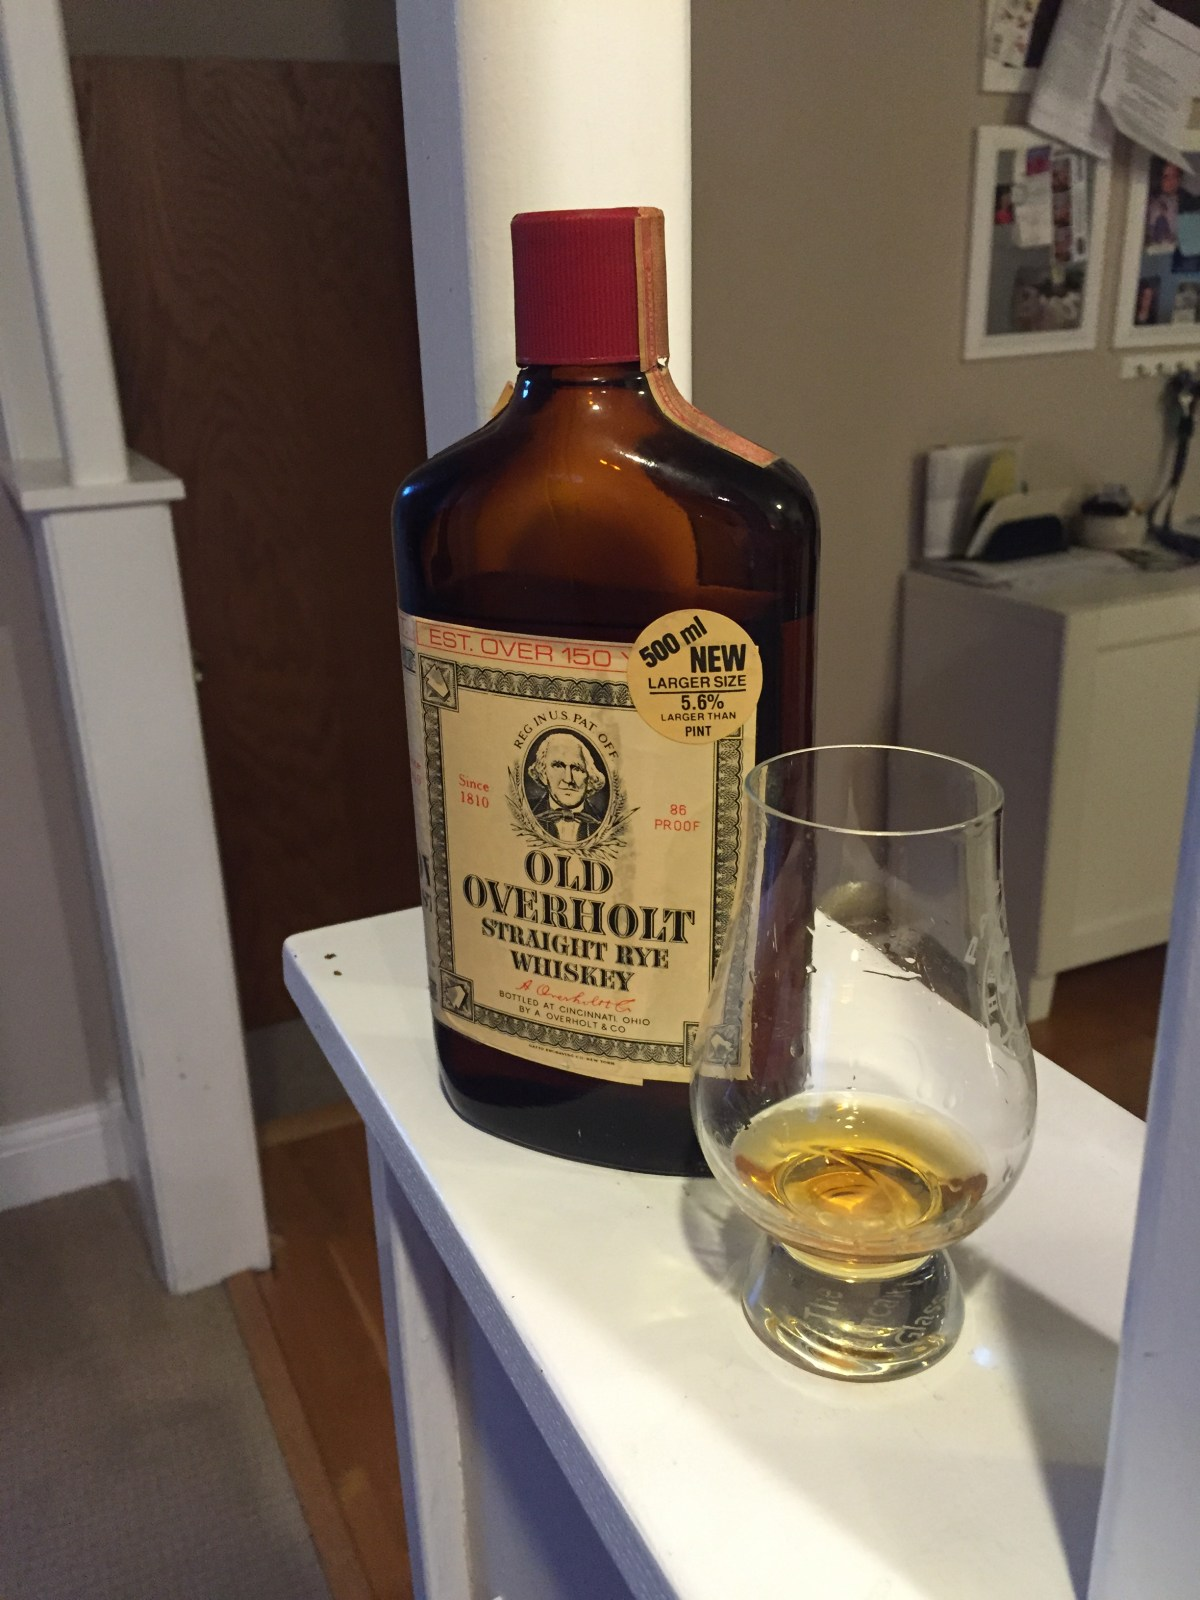 1975 Old Overholt Straight Rye Review